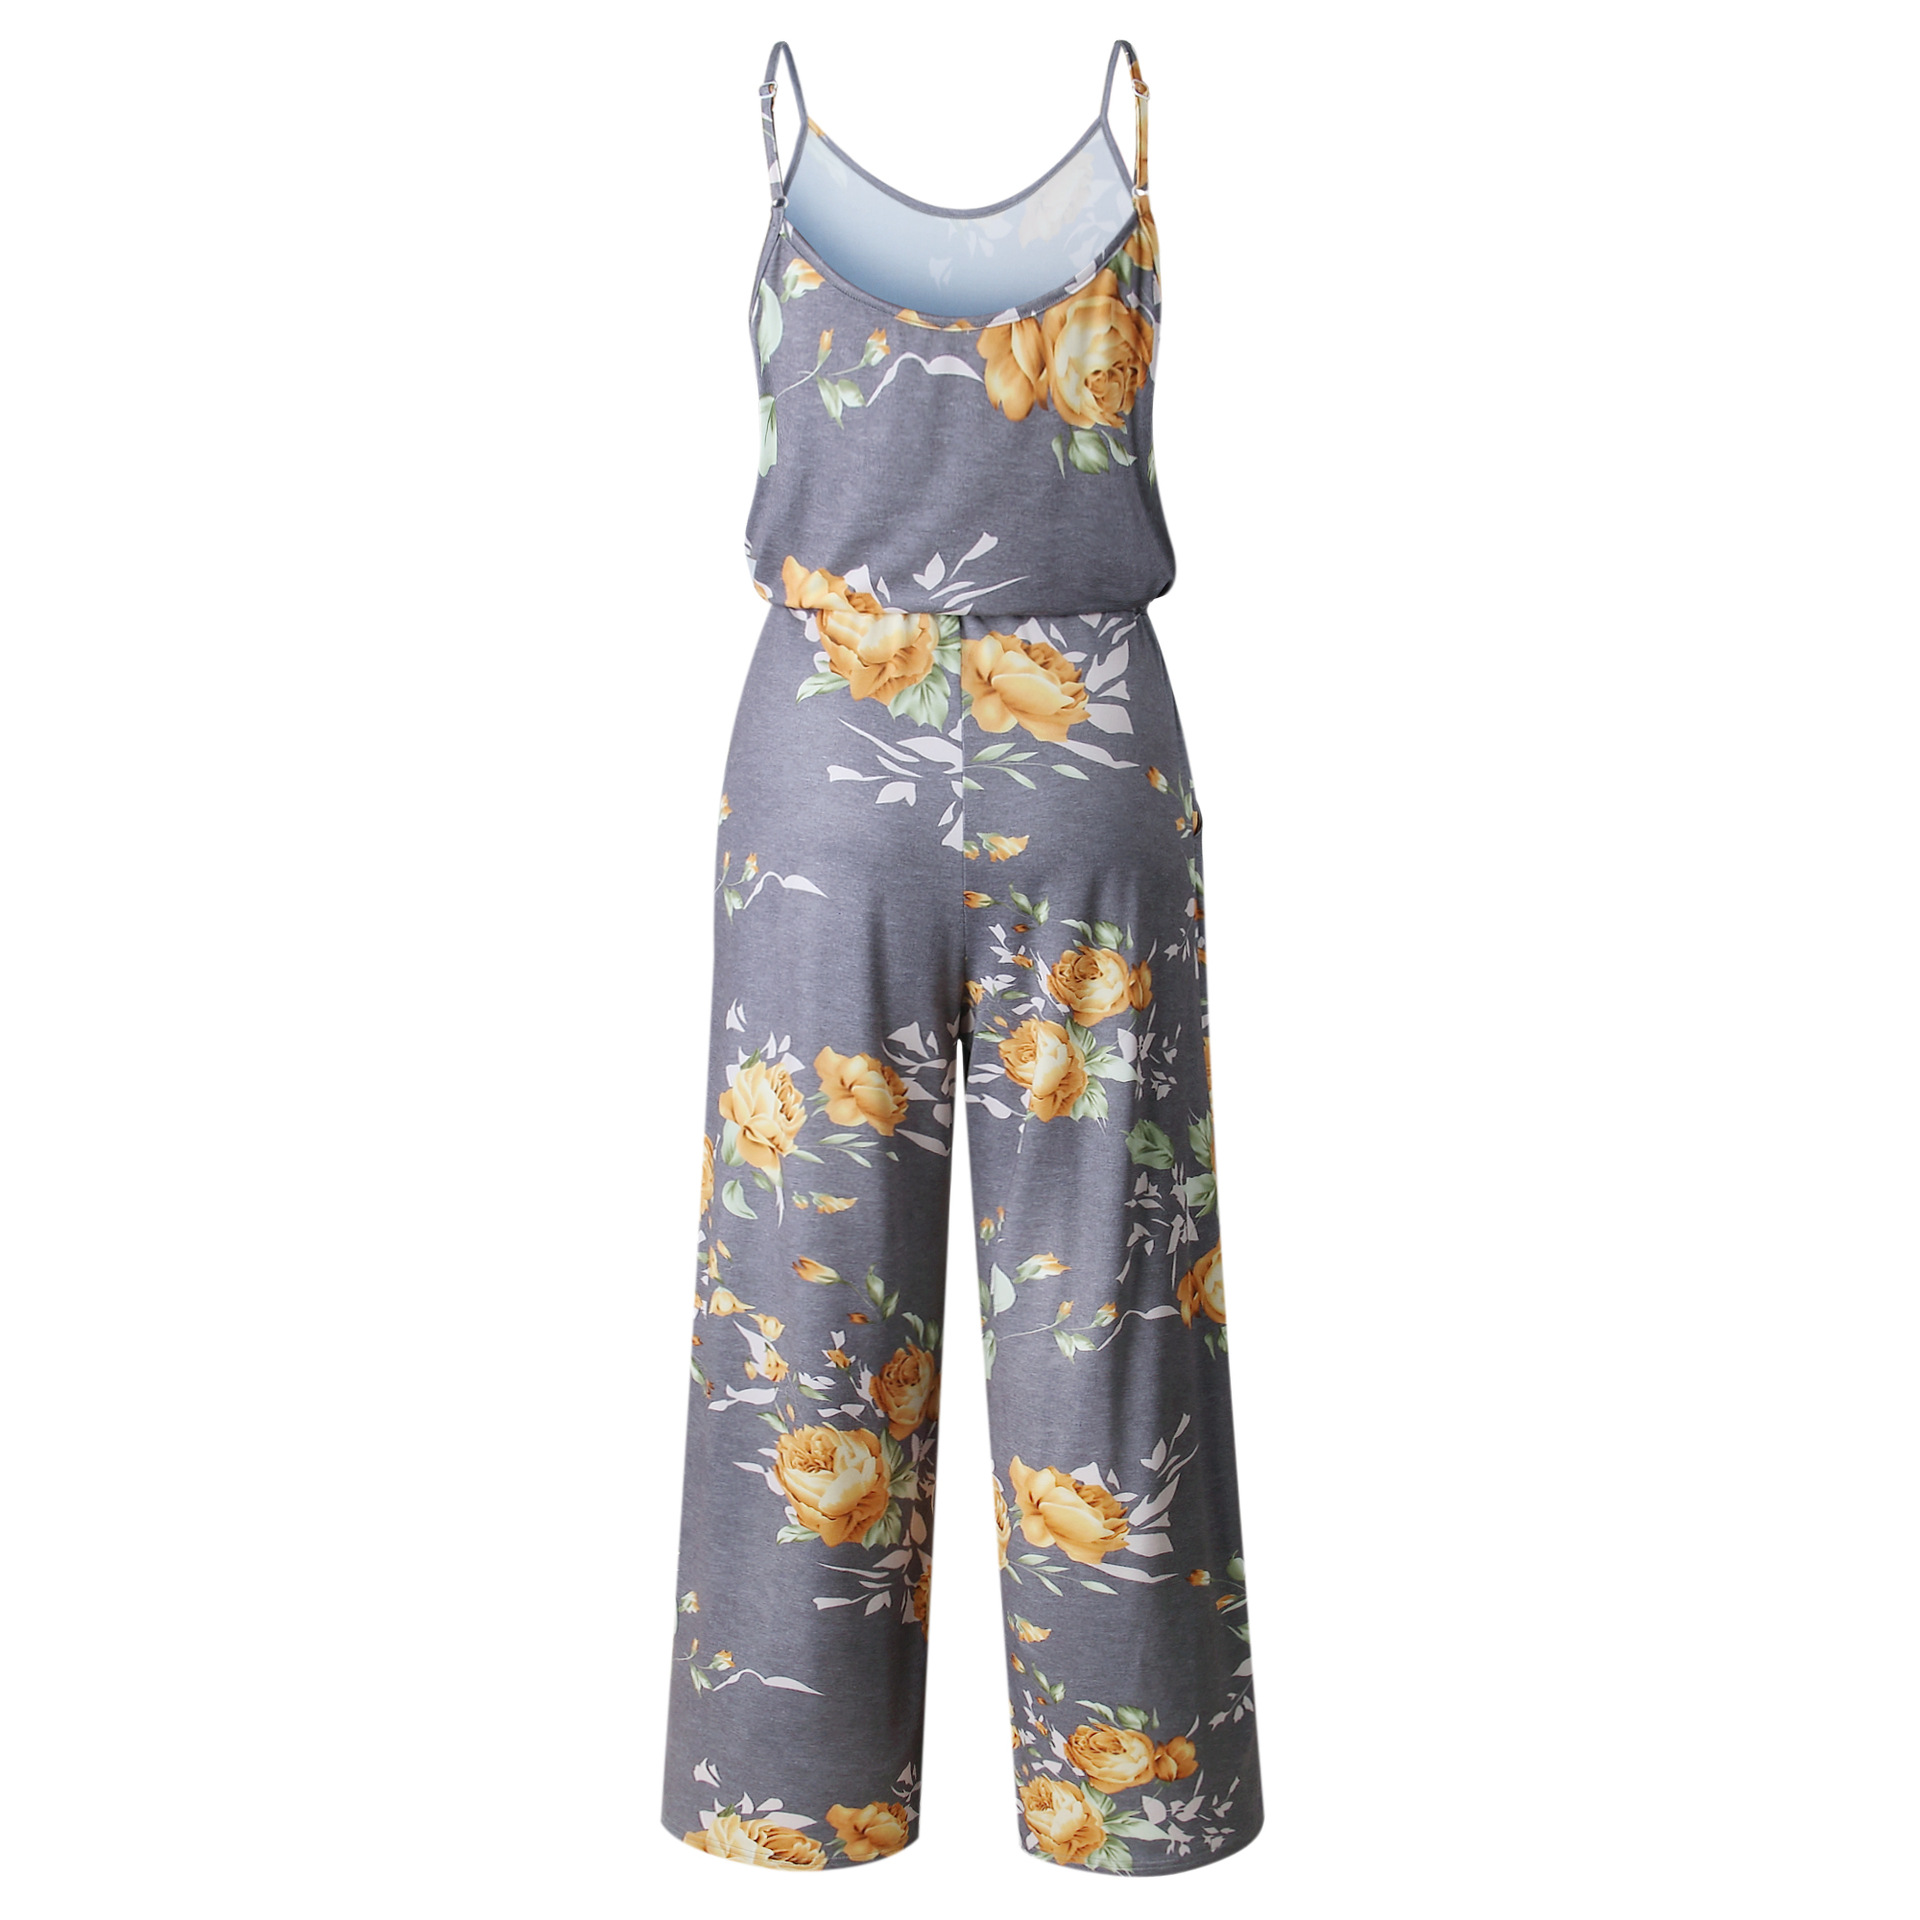 Spaghetti Strap Jumpsuit Women 2018 Summer Long Pants Floral Print Rompers Beach Casual Jumpsuits Sleeveless Sashes Playsuits 8